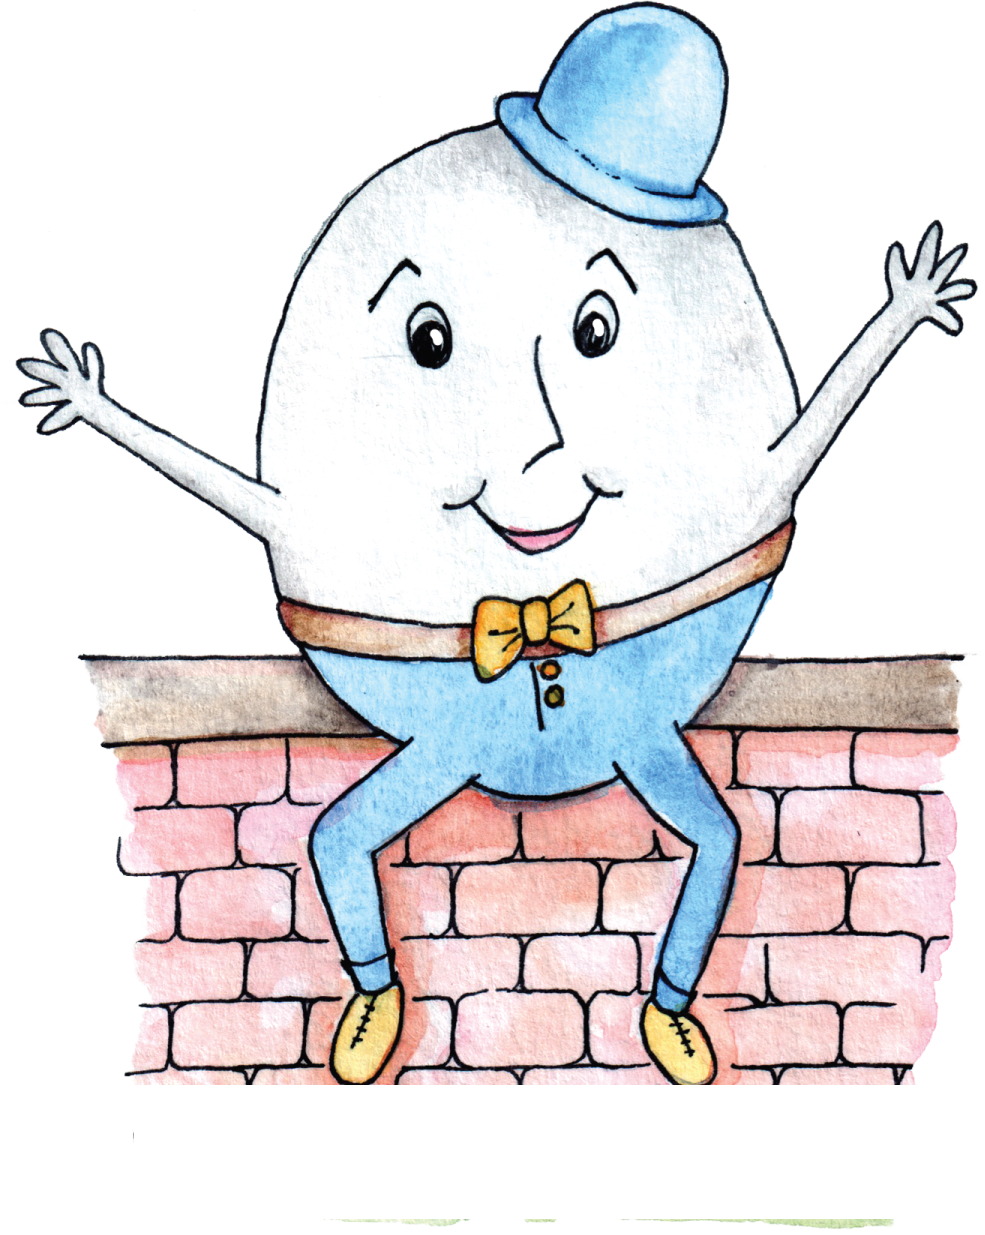 svg royalty free download Humpty dumpty clipart. Final orenstein solutions counseling.